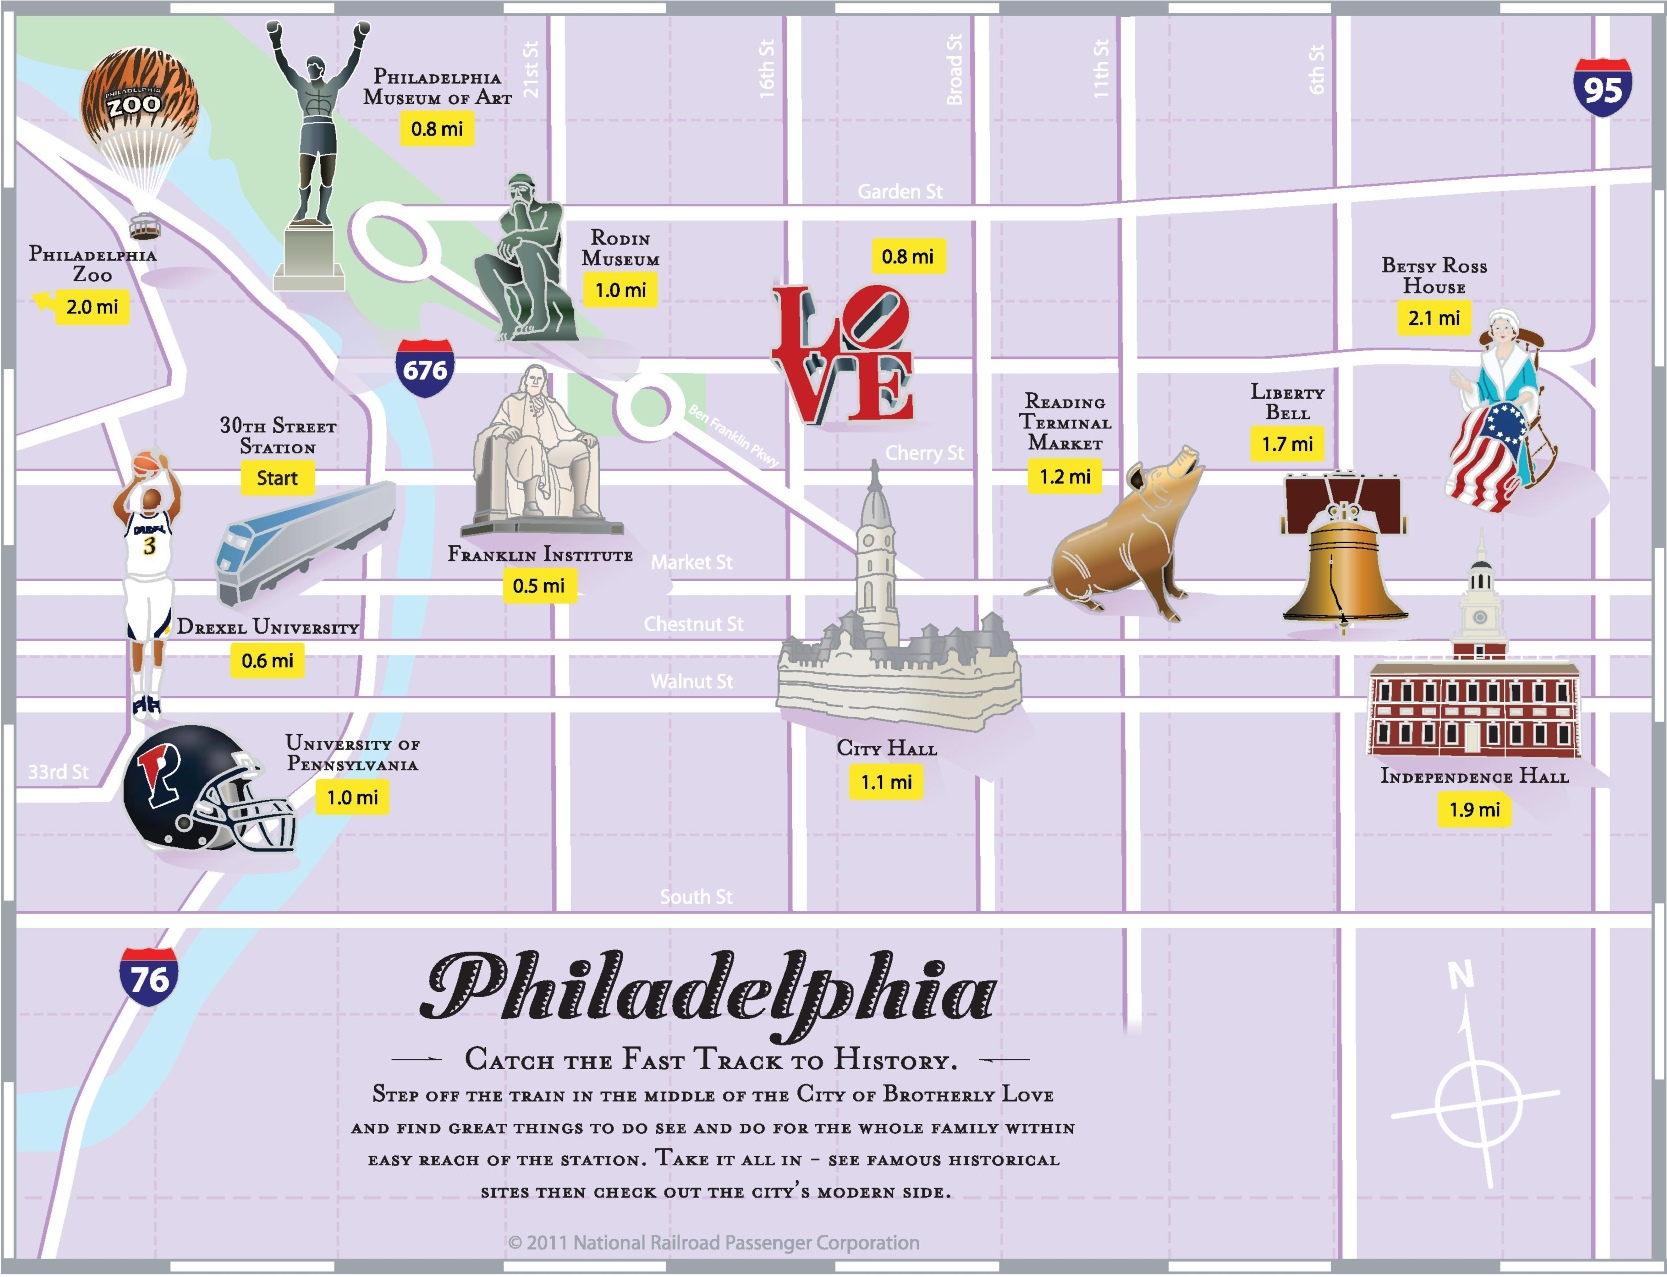 Philadelphia tourist attractions map – Tourist Attractions Map In Philadelphia